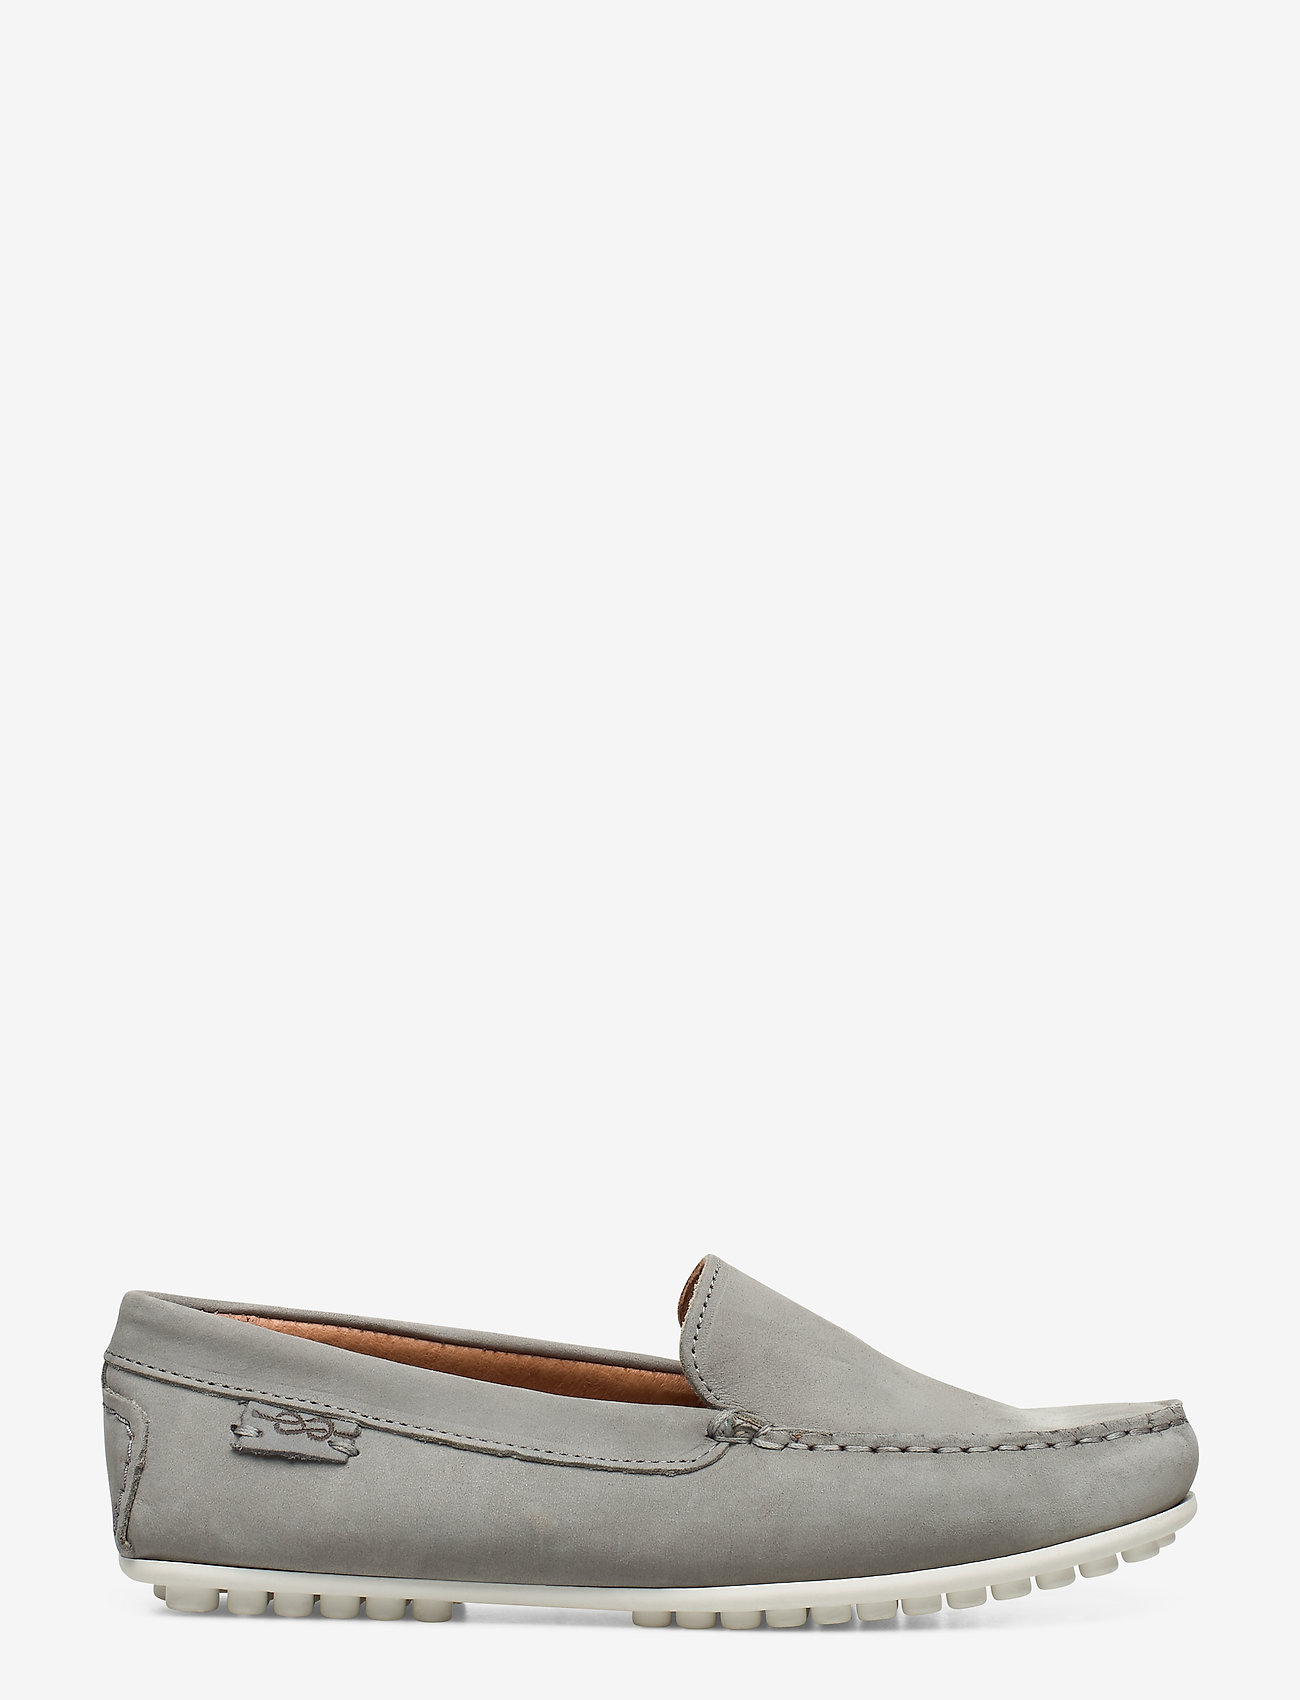 Marstrand - PLAIN DRIVING LOAFER WMN - mokasiner - lt.grey - 1